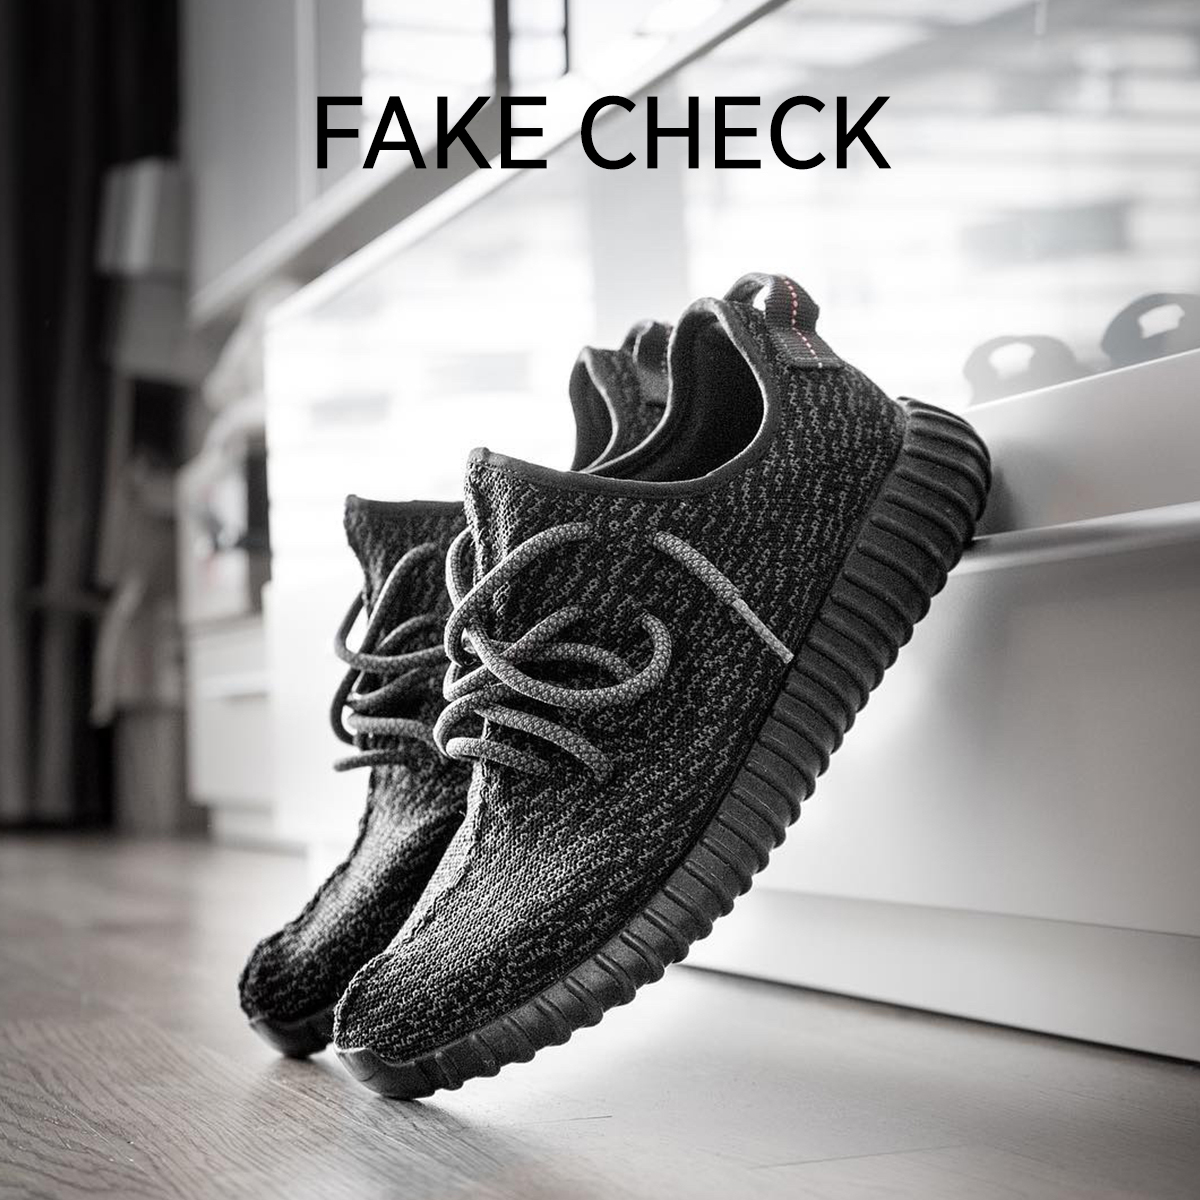 Fake Check Yeezy 350 Pirate Black